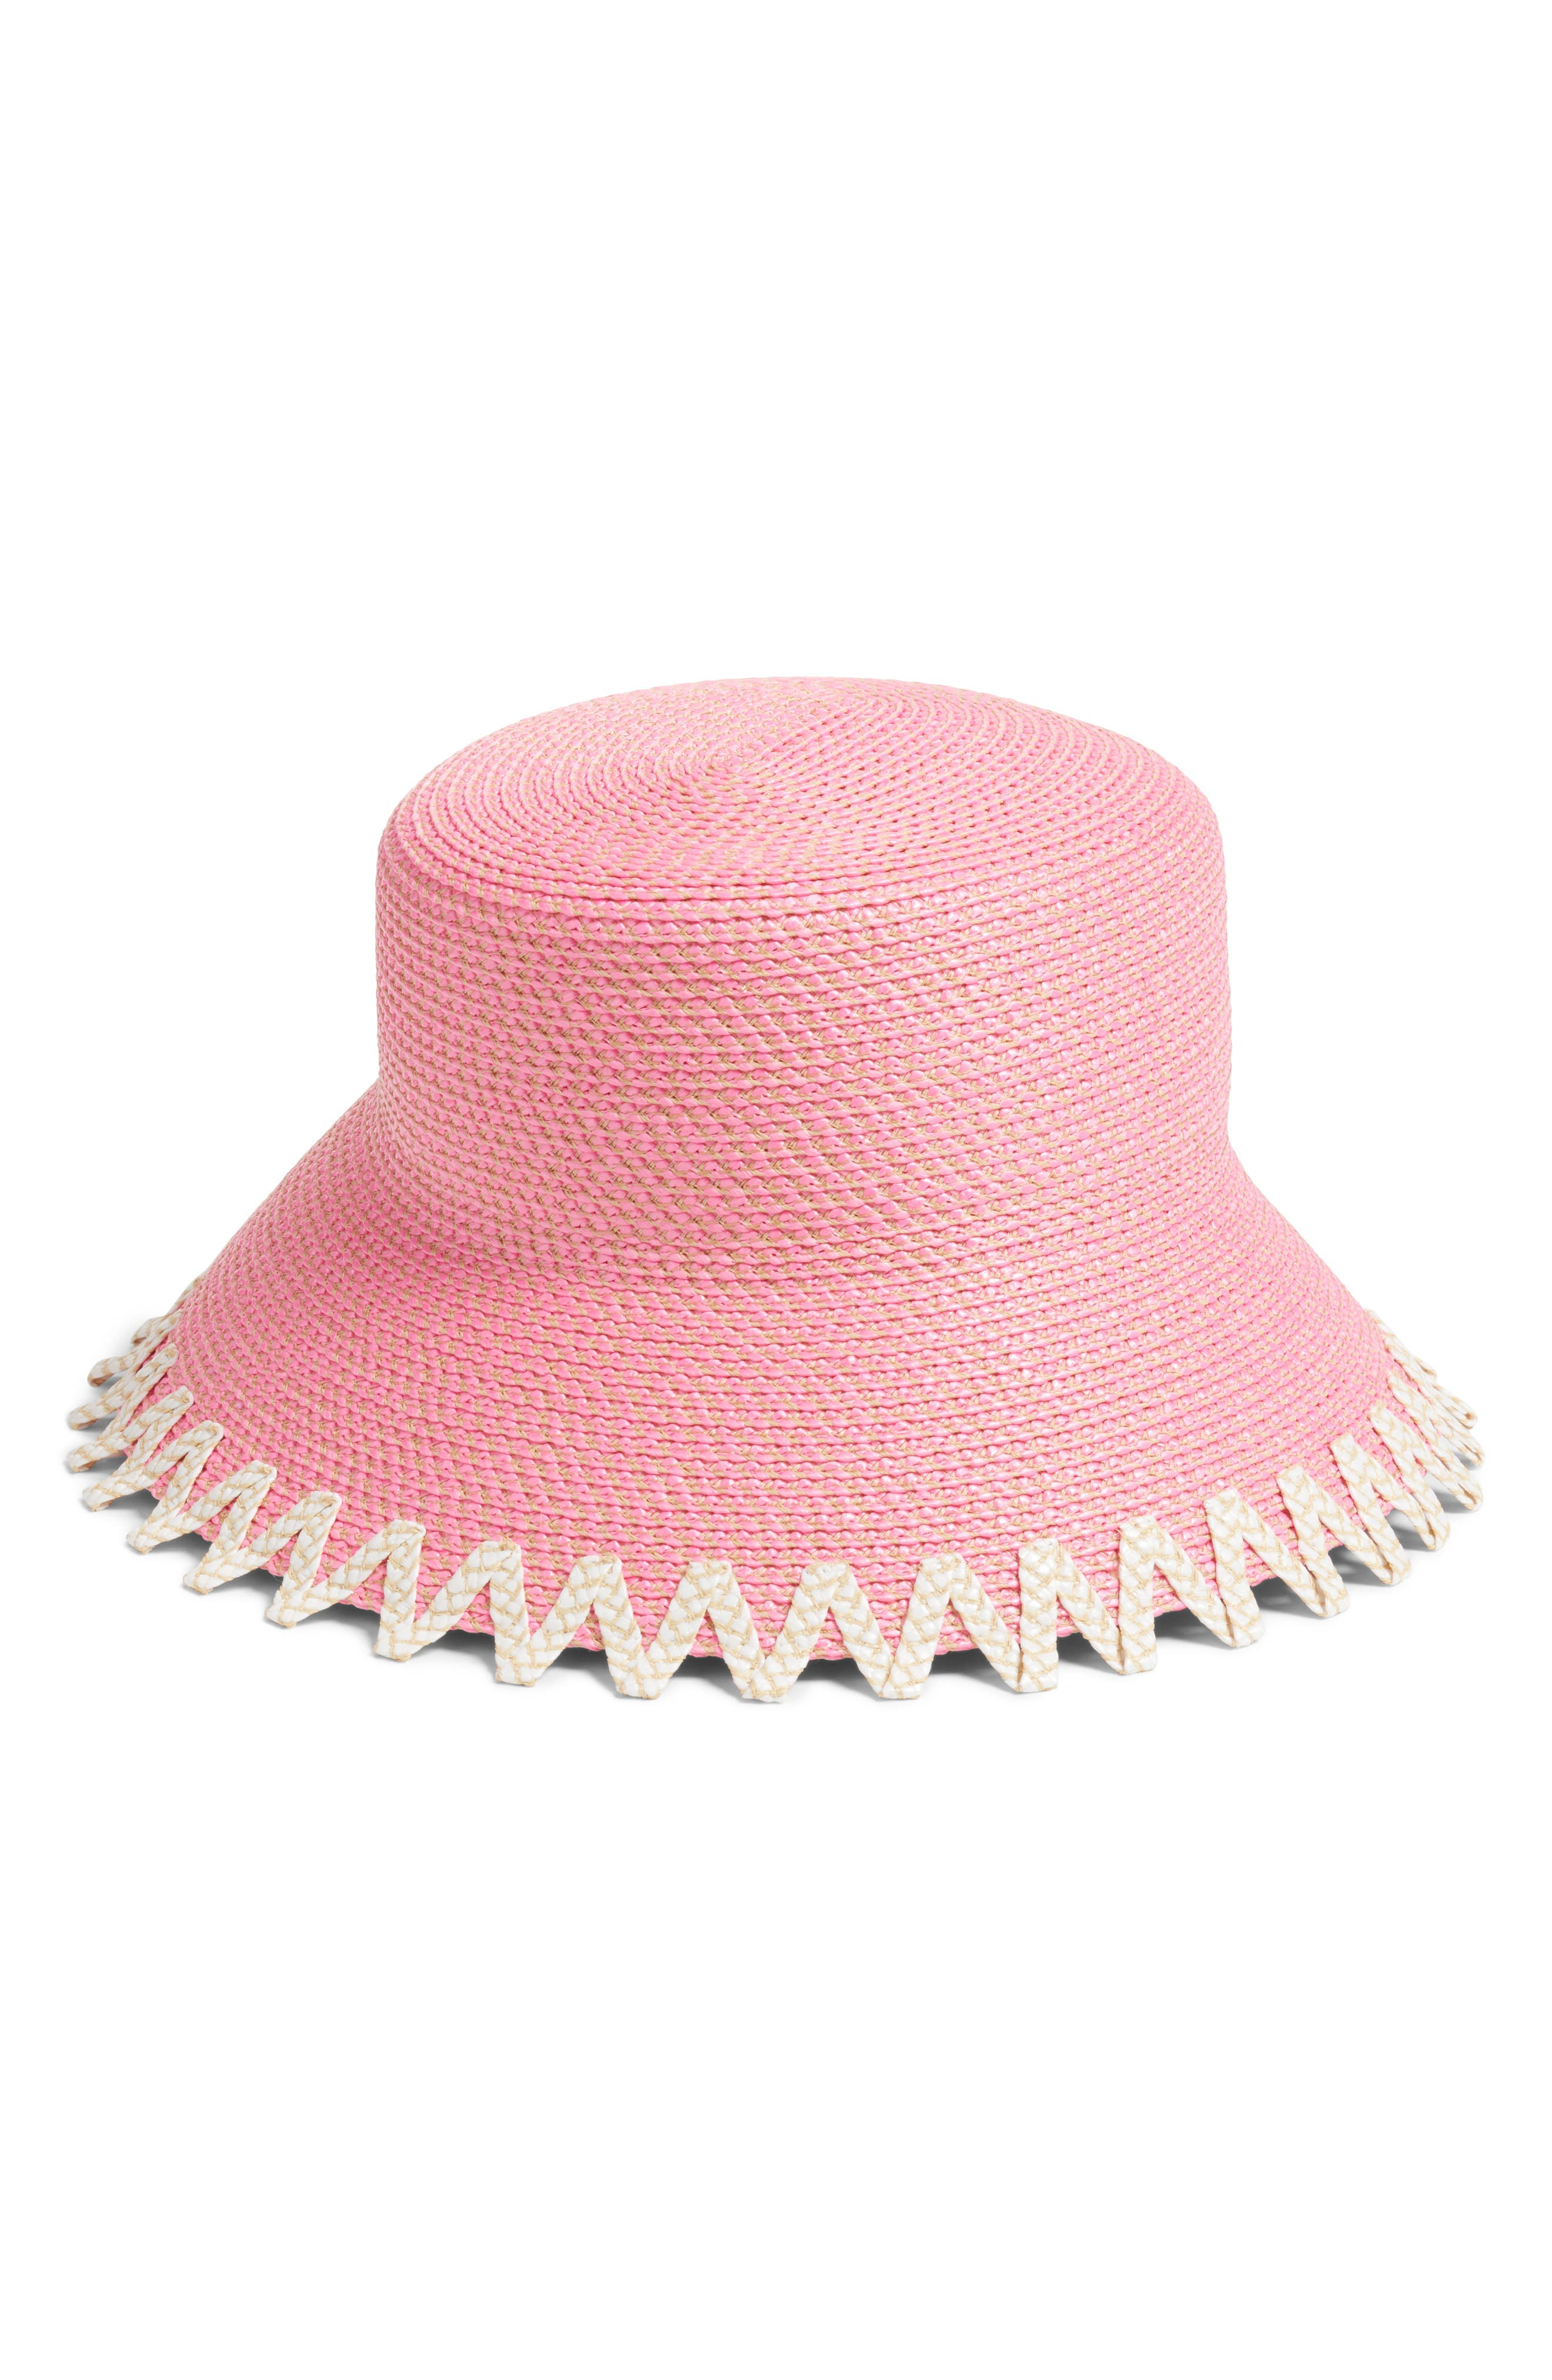 Eloise Squishee<sup>®</sup> Bucket Hat,                             Main thumbnail 1, color,                             Pink Mix